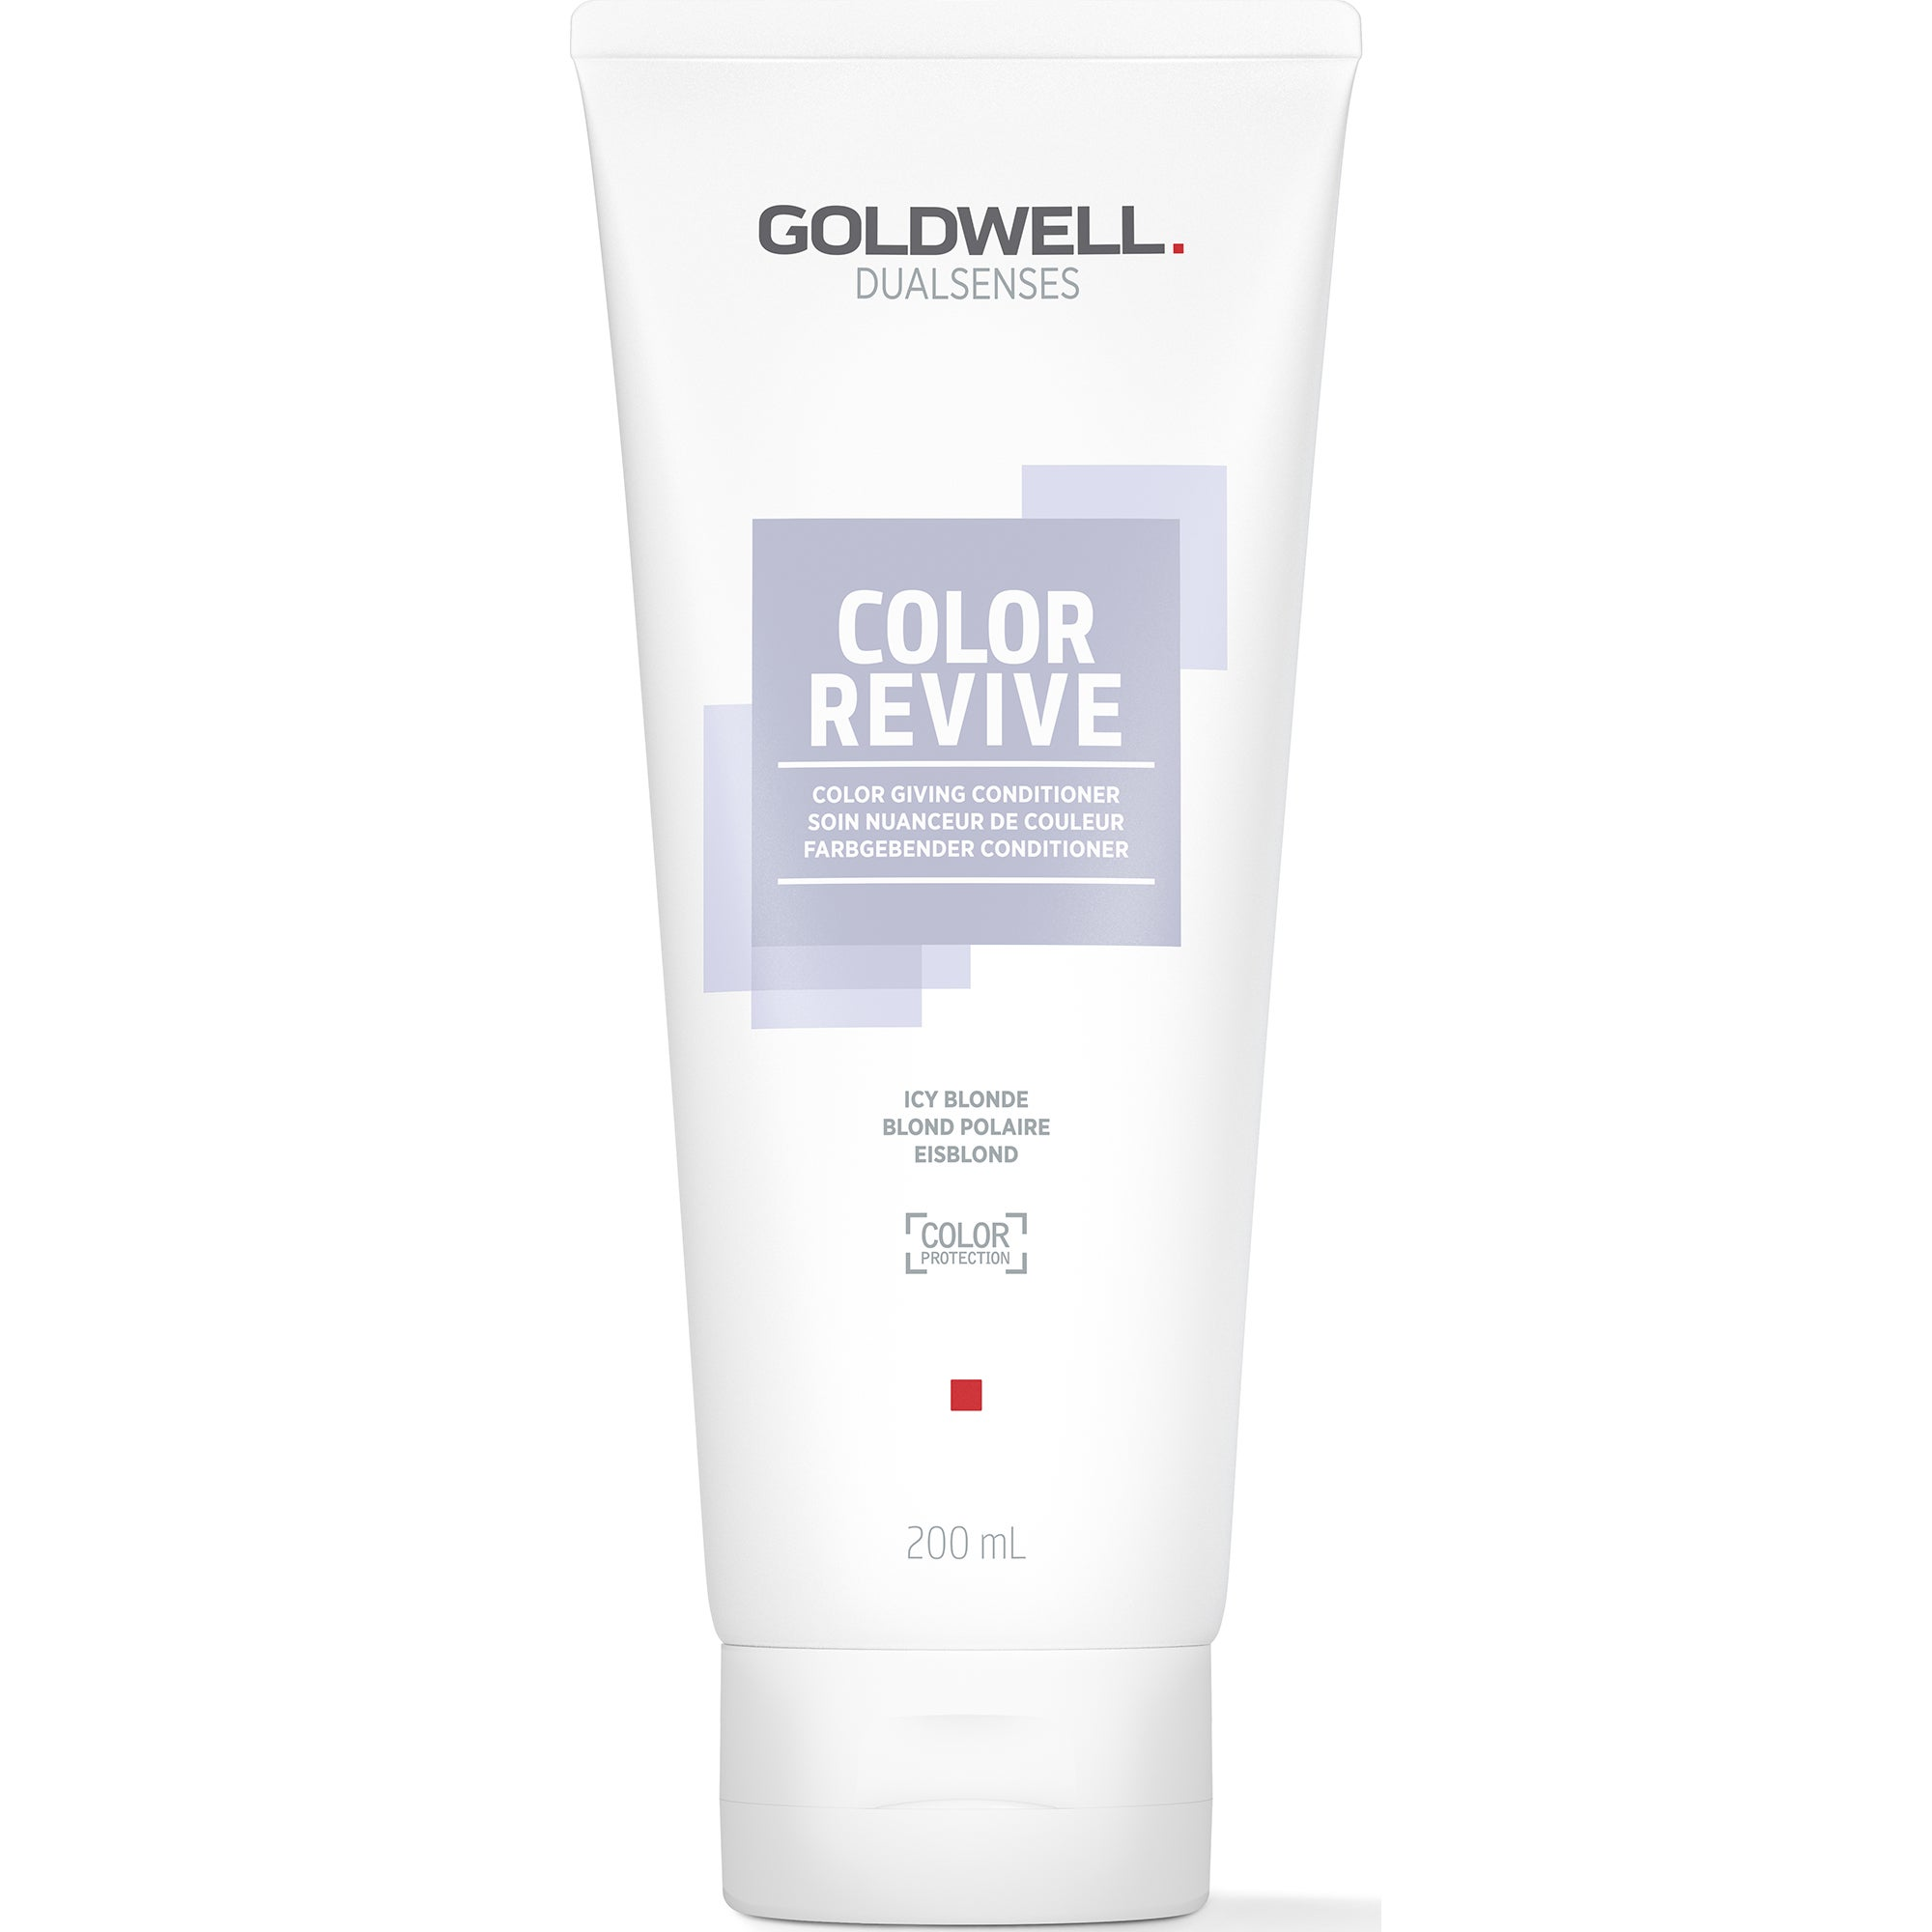 Color Revive Conditioners, Icy Blonde 200 ml Goldwell Conditioner - Balsam